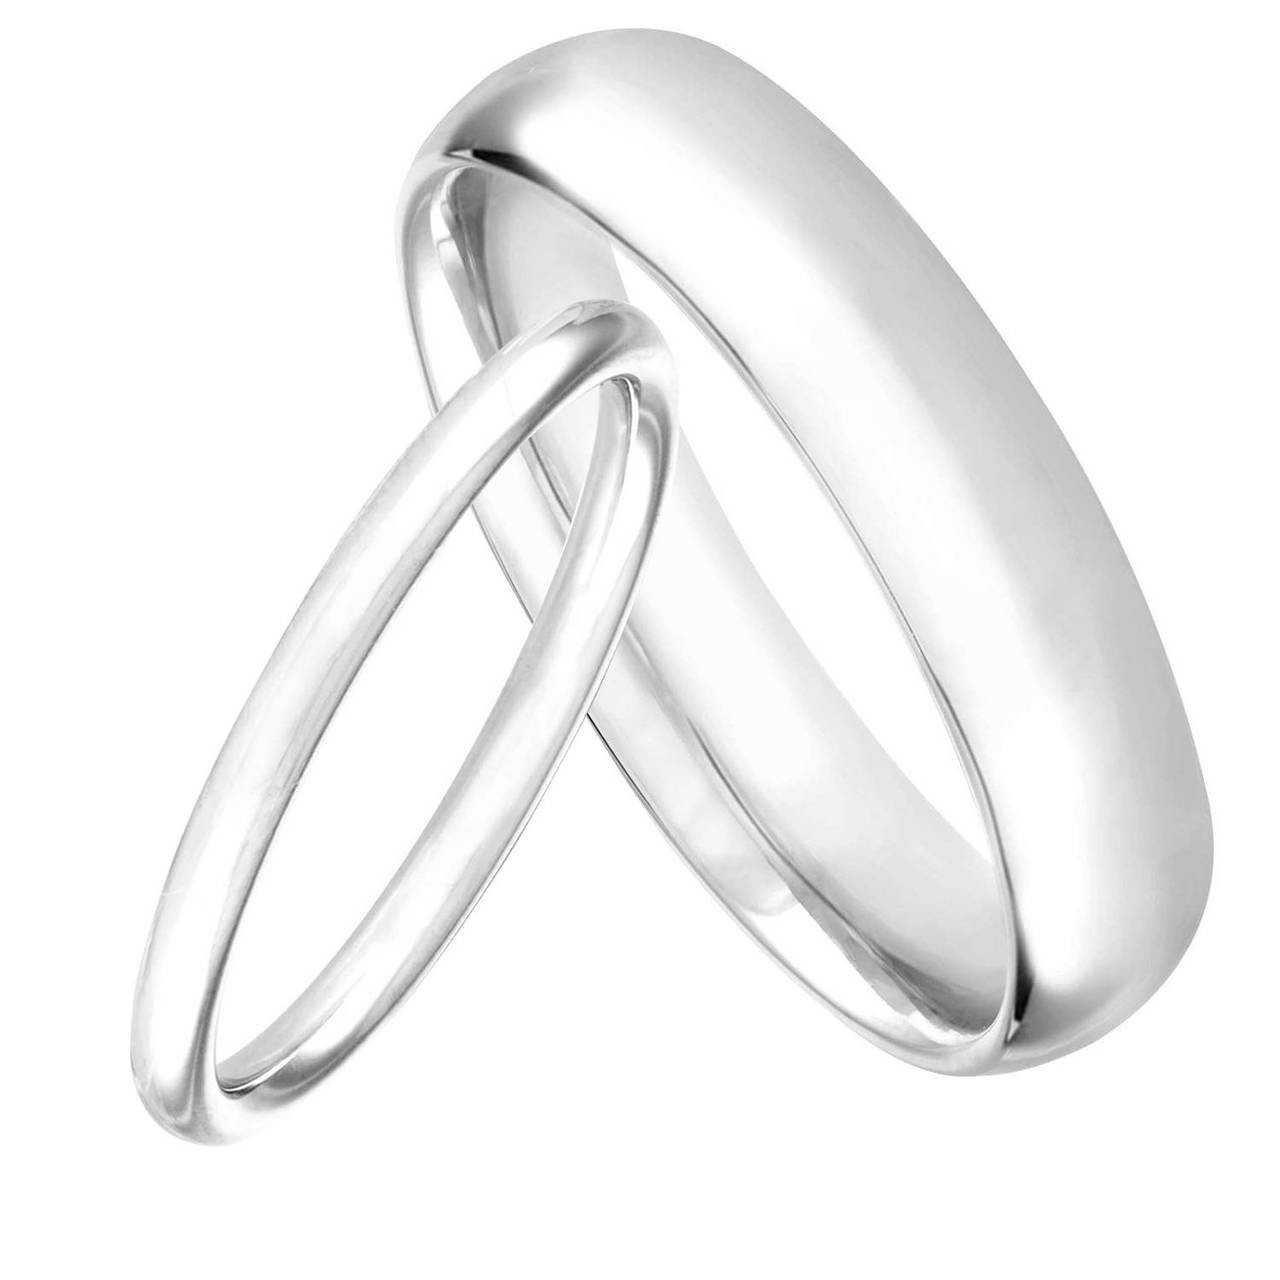 Platinum His And Hers Wedding Bands Matching Wedding Rings Couple Wedding Bands Set Anniversary Bands 6 Mm And 2 Mm